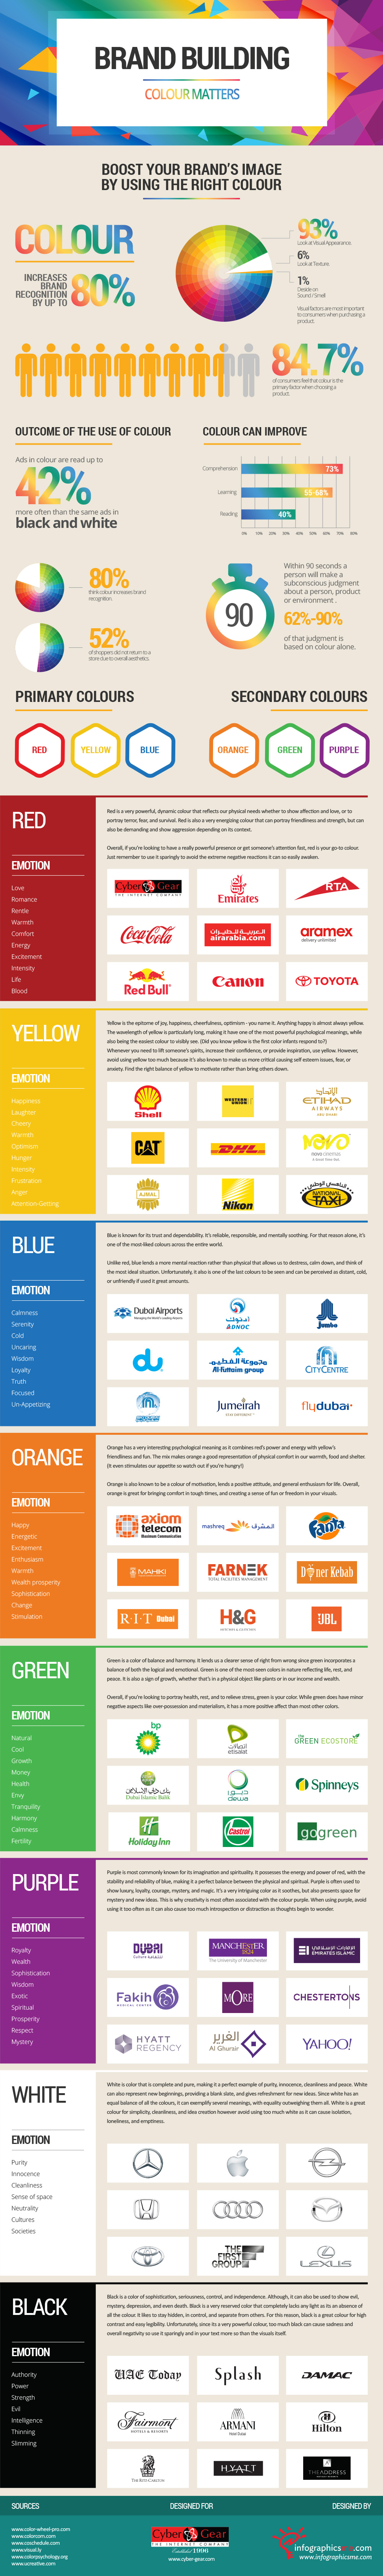 Brand Building - Colour Matters